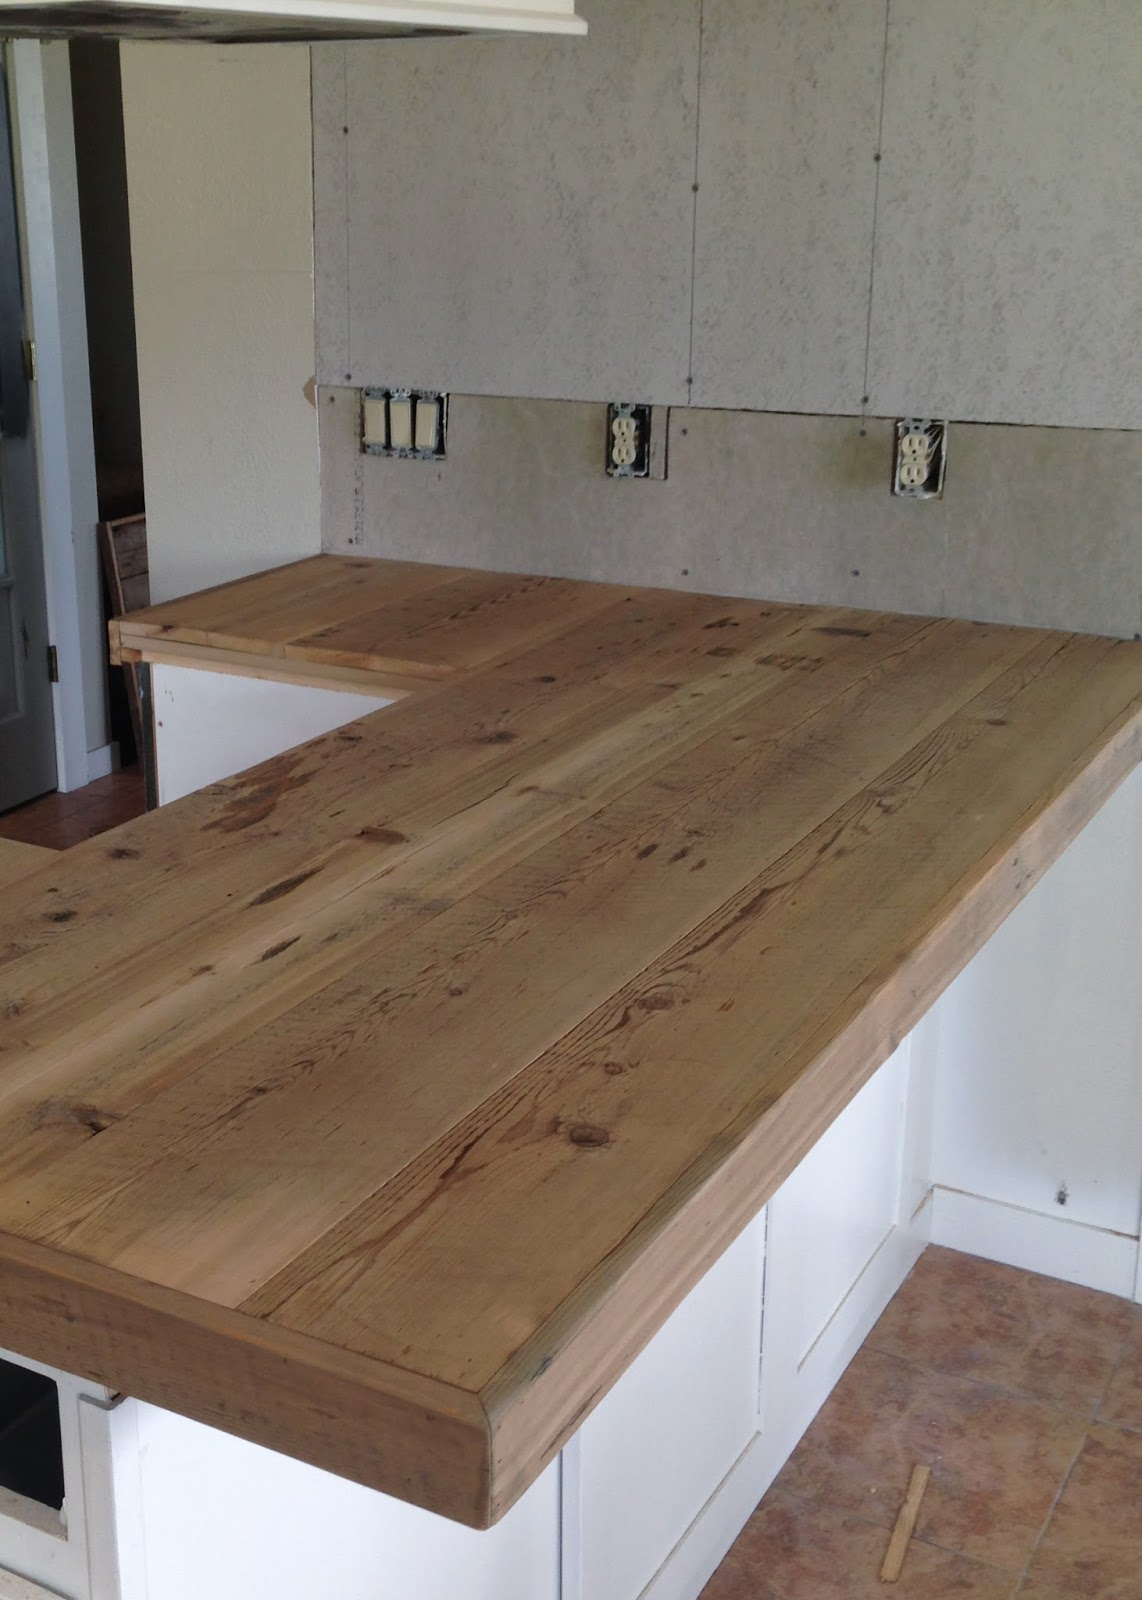 diy reclaimed wood countertop averie lane diy reclaimed diy home sweet home 9 amazing diy kitchen countertop ideas